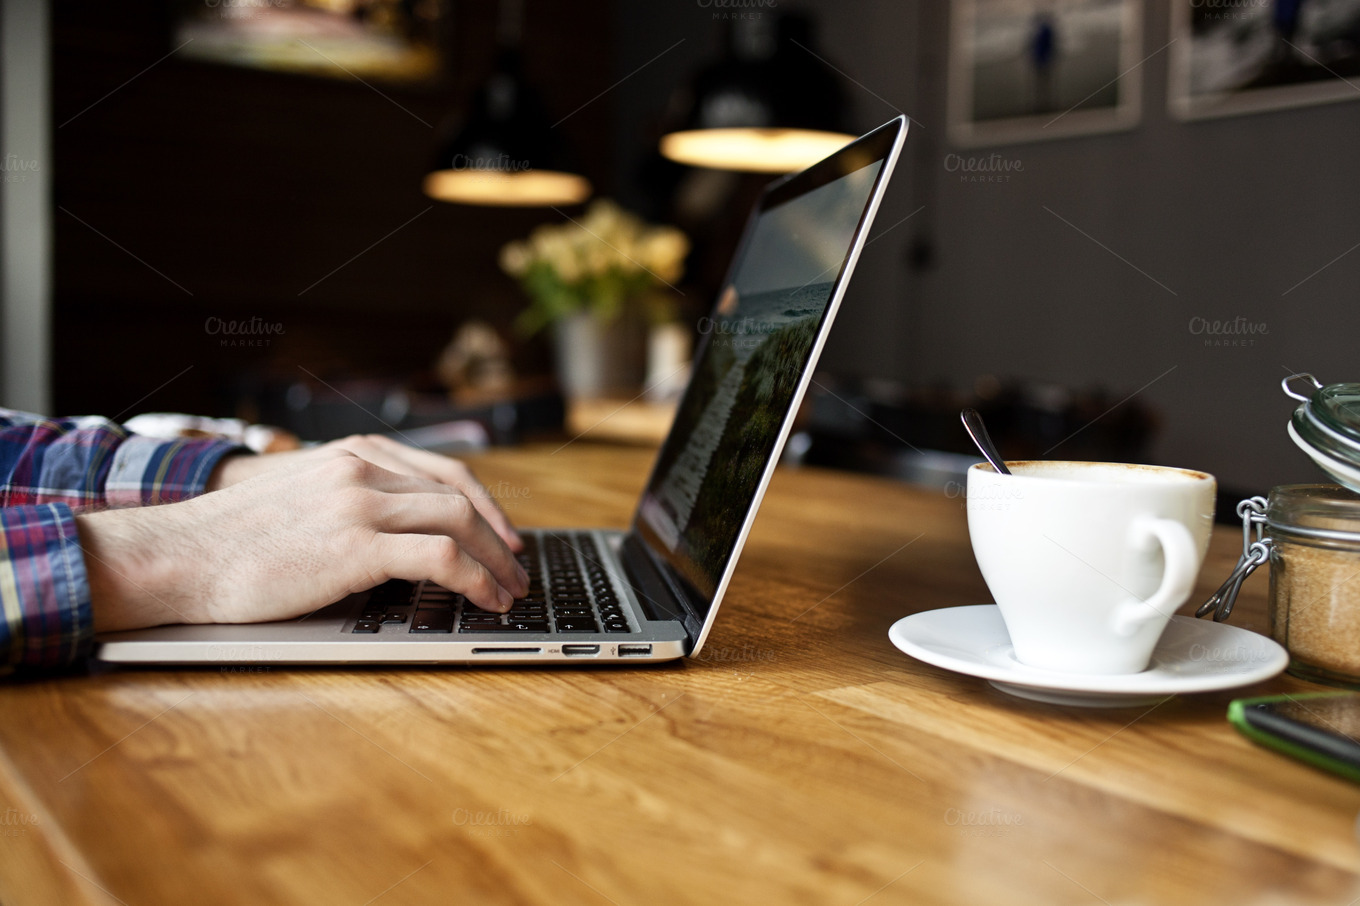 working on macbook pro in the cafe technology photos on creative market. Black Bedroom Furniture Sets. Home Design Ideas